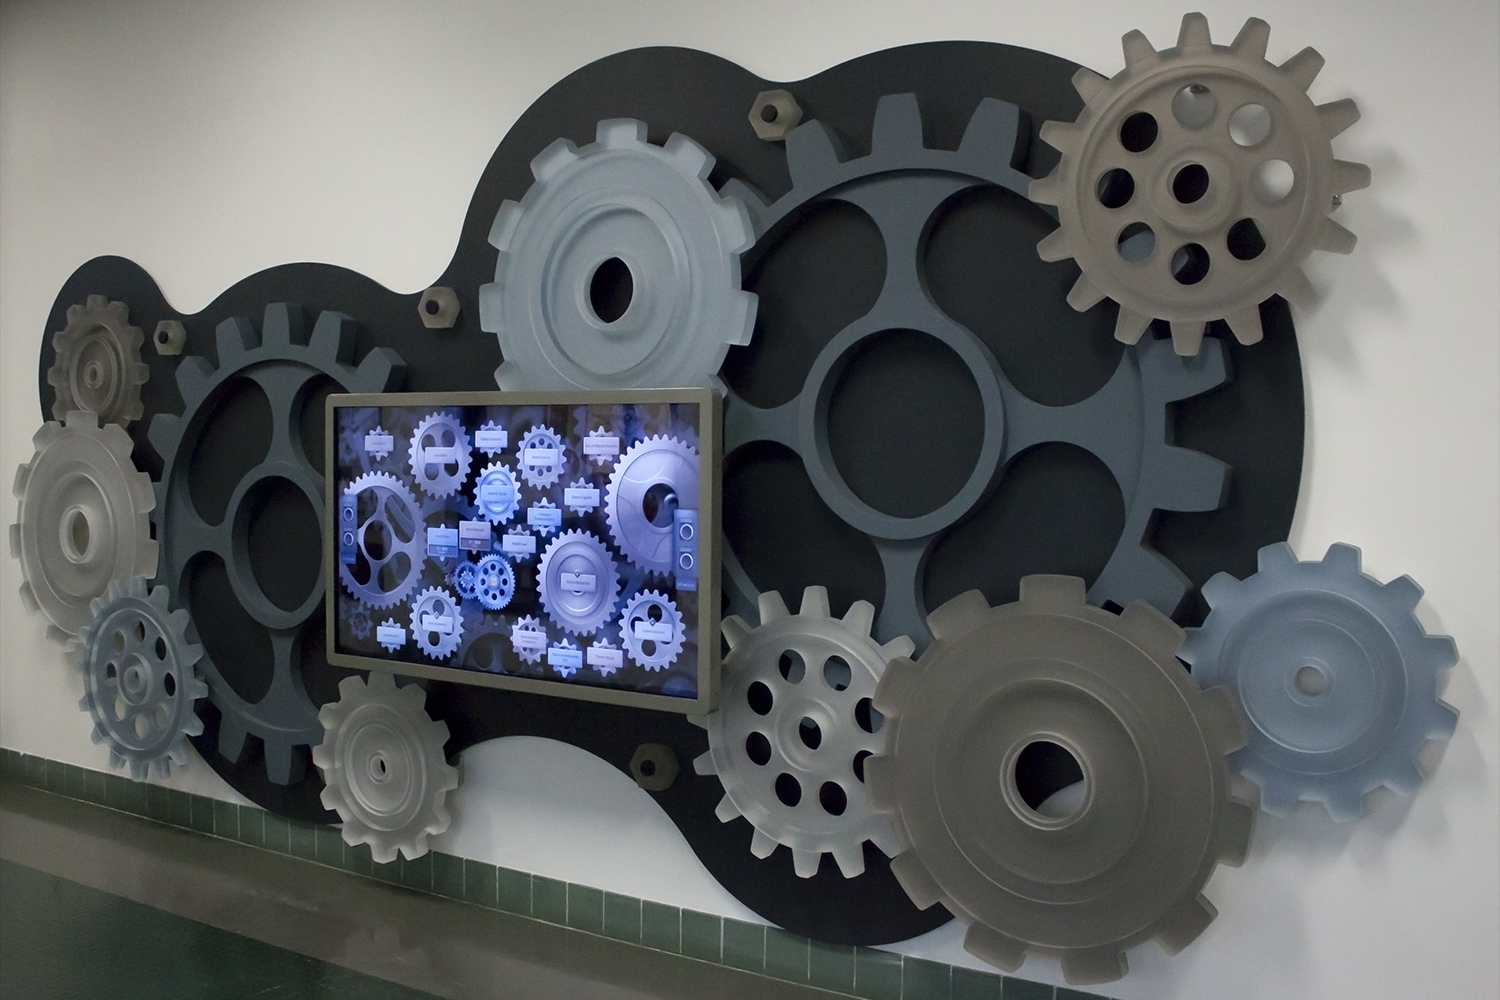 The gear structure created by Reynolds-Alberta Museum